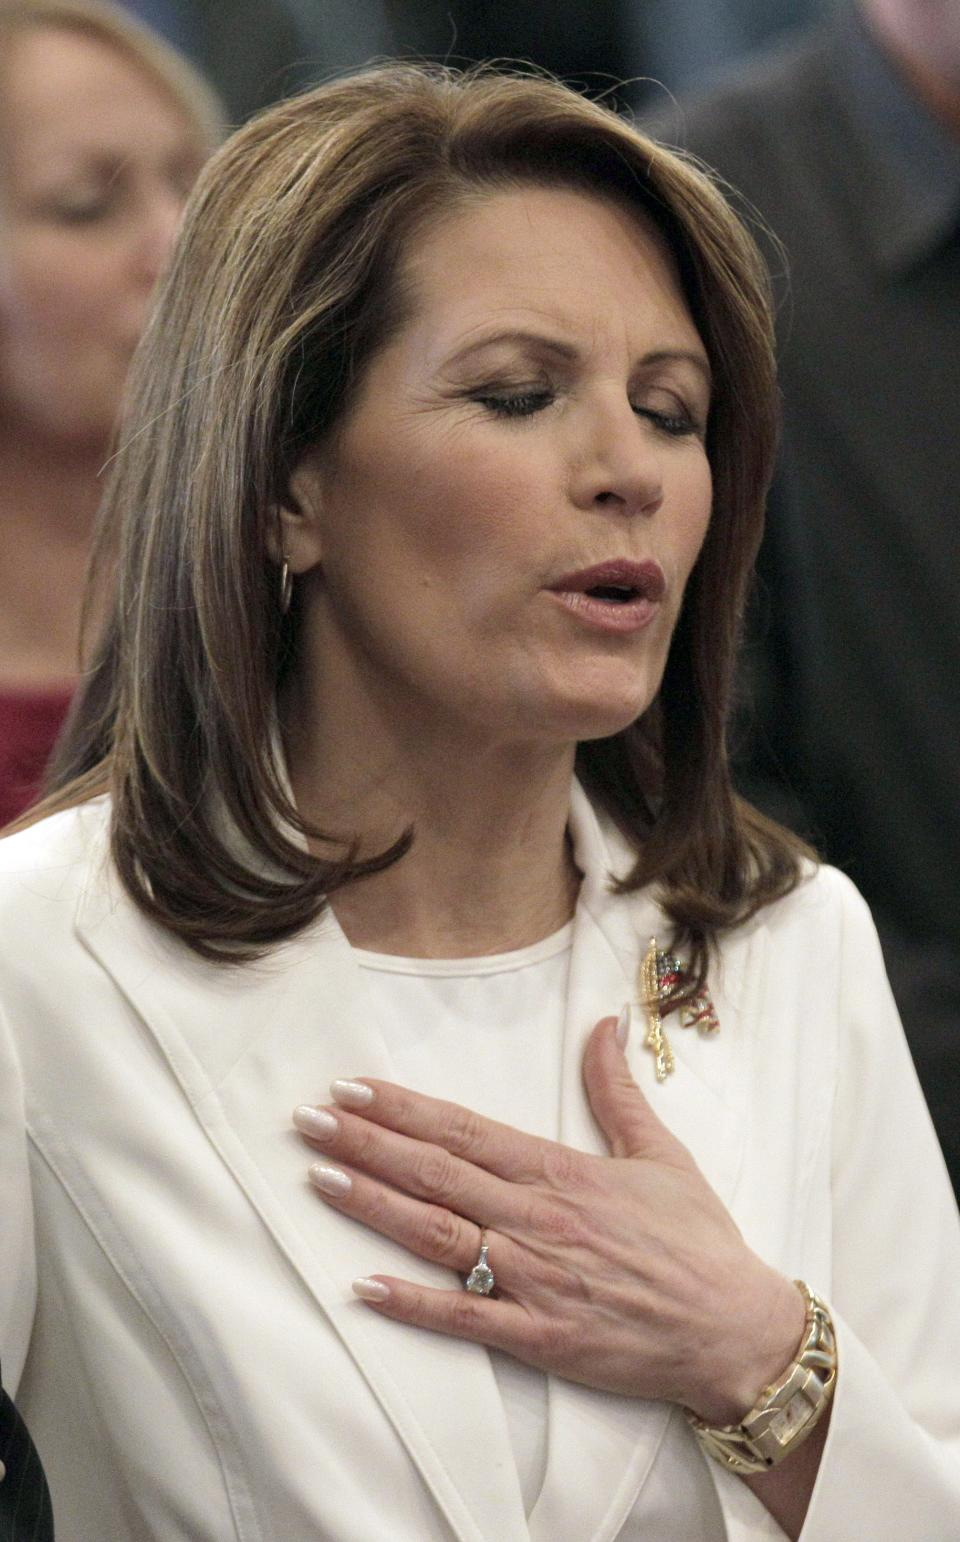 Republican presidential candidate, Rep. Michele Bachmann, R-Minn., sings with the congregation during a campaign stop at Jubilee Family Church in Oskaloosa, Iowa, Sunday, Jan, 1, 2012. (AP Photo/Charlie Riedel)